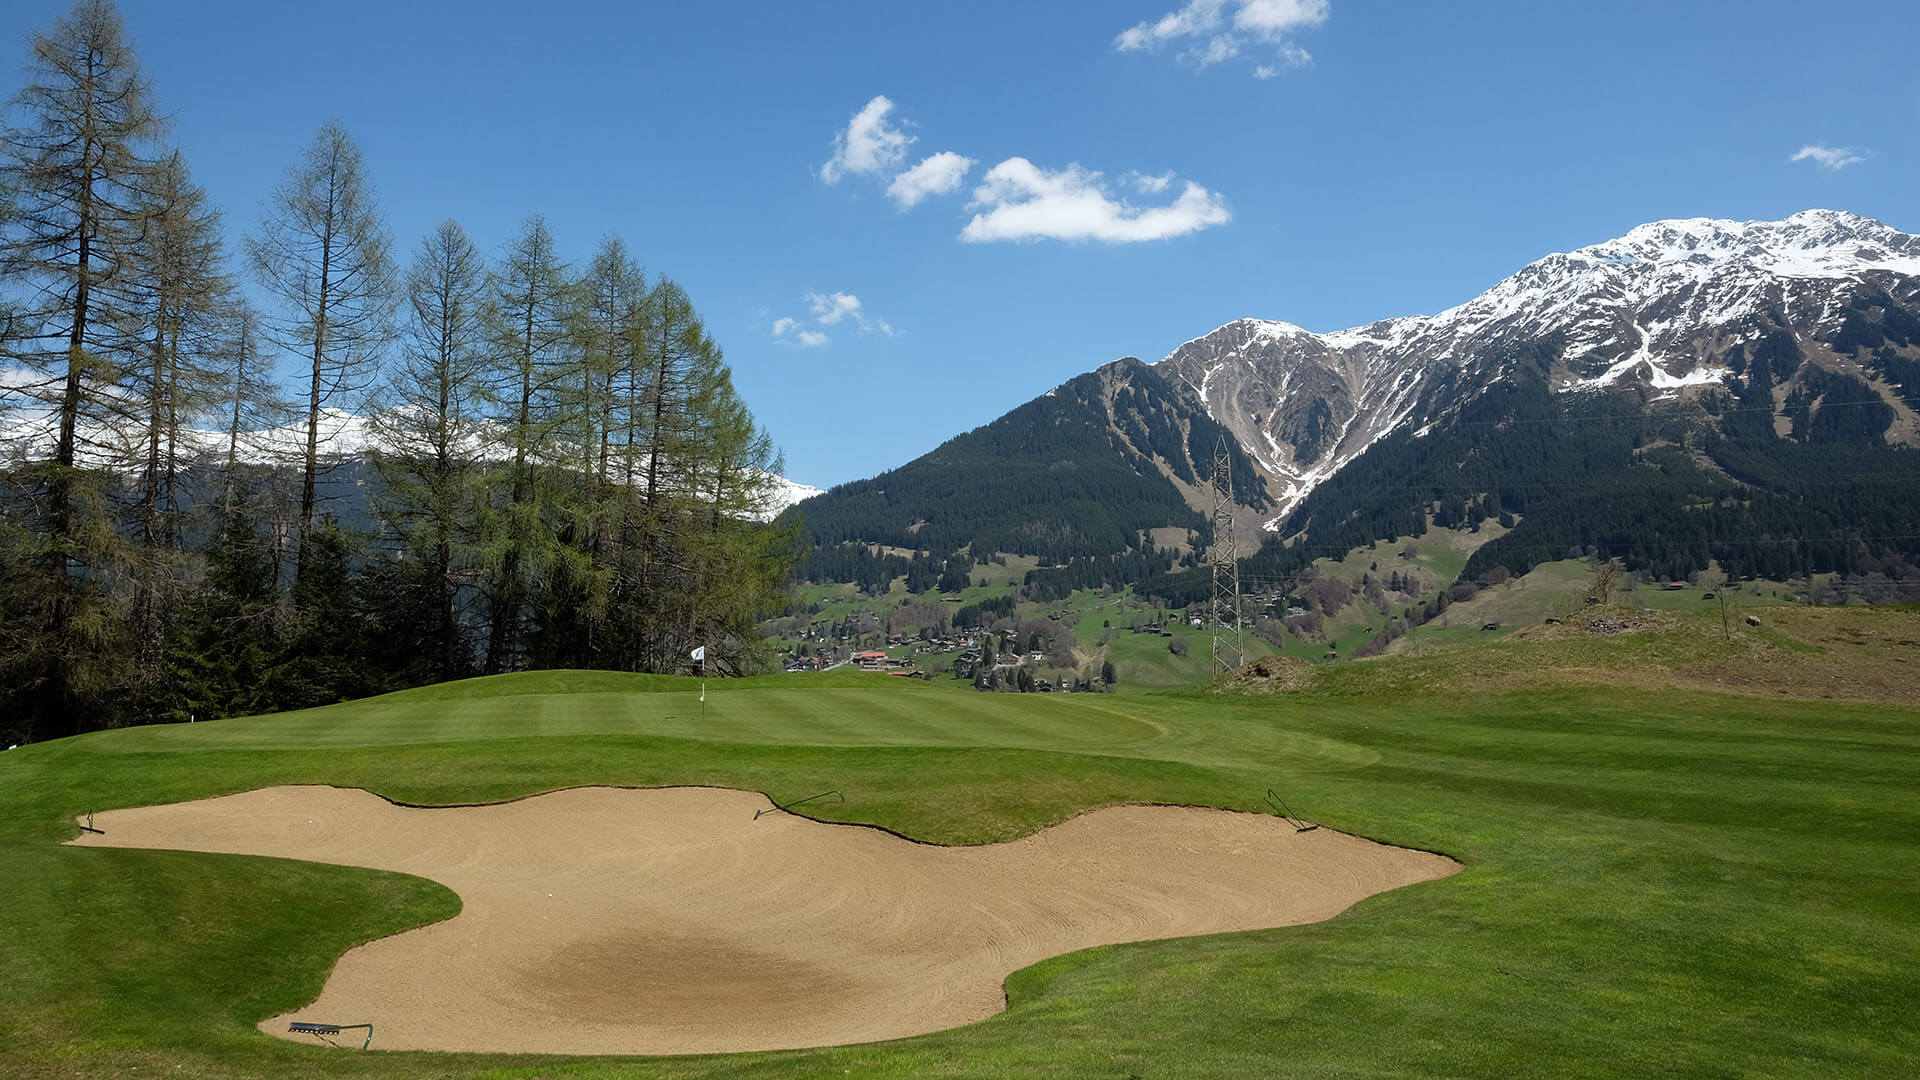 Golf Club Klosters Loch 2